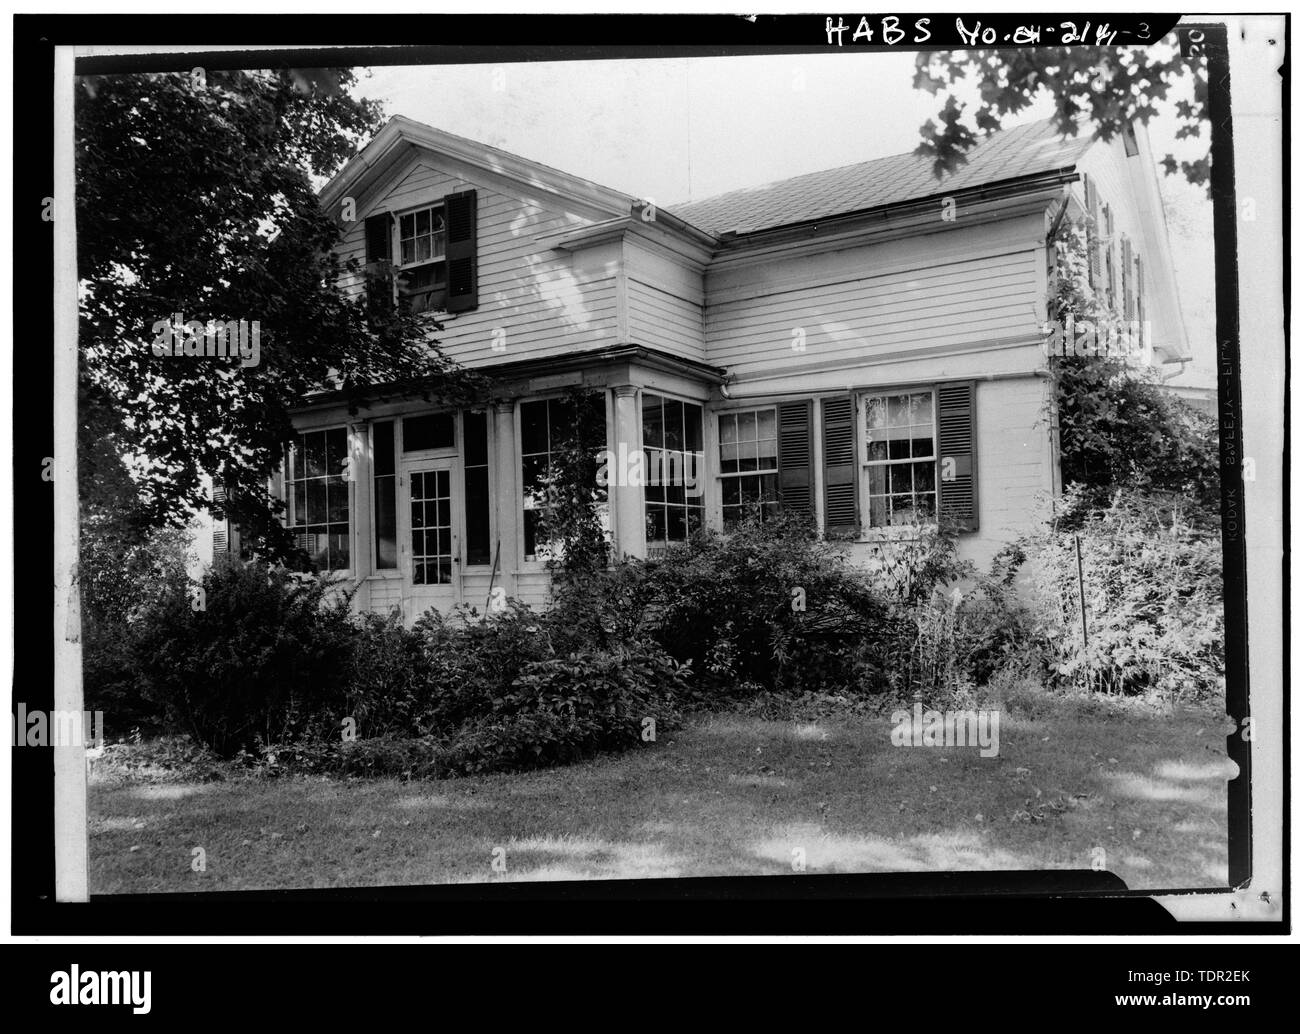 Photograph of photograph by Jack E. Boucher, September 1971. SOUTHEAST ELEVATION. - Abbott-Page House, Mason Road, State Route 13 vicinity, Milan, Erie County, OH - Stock Image